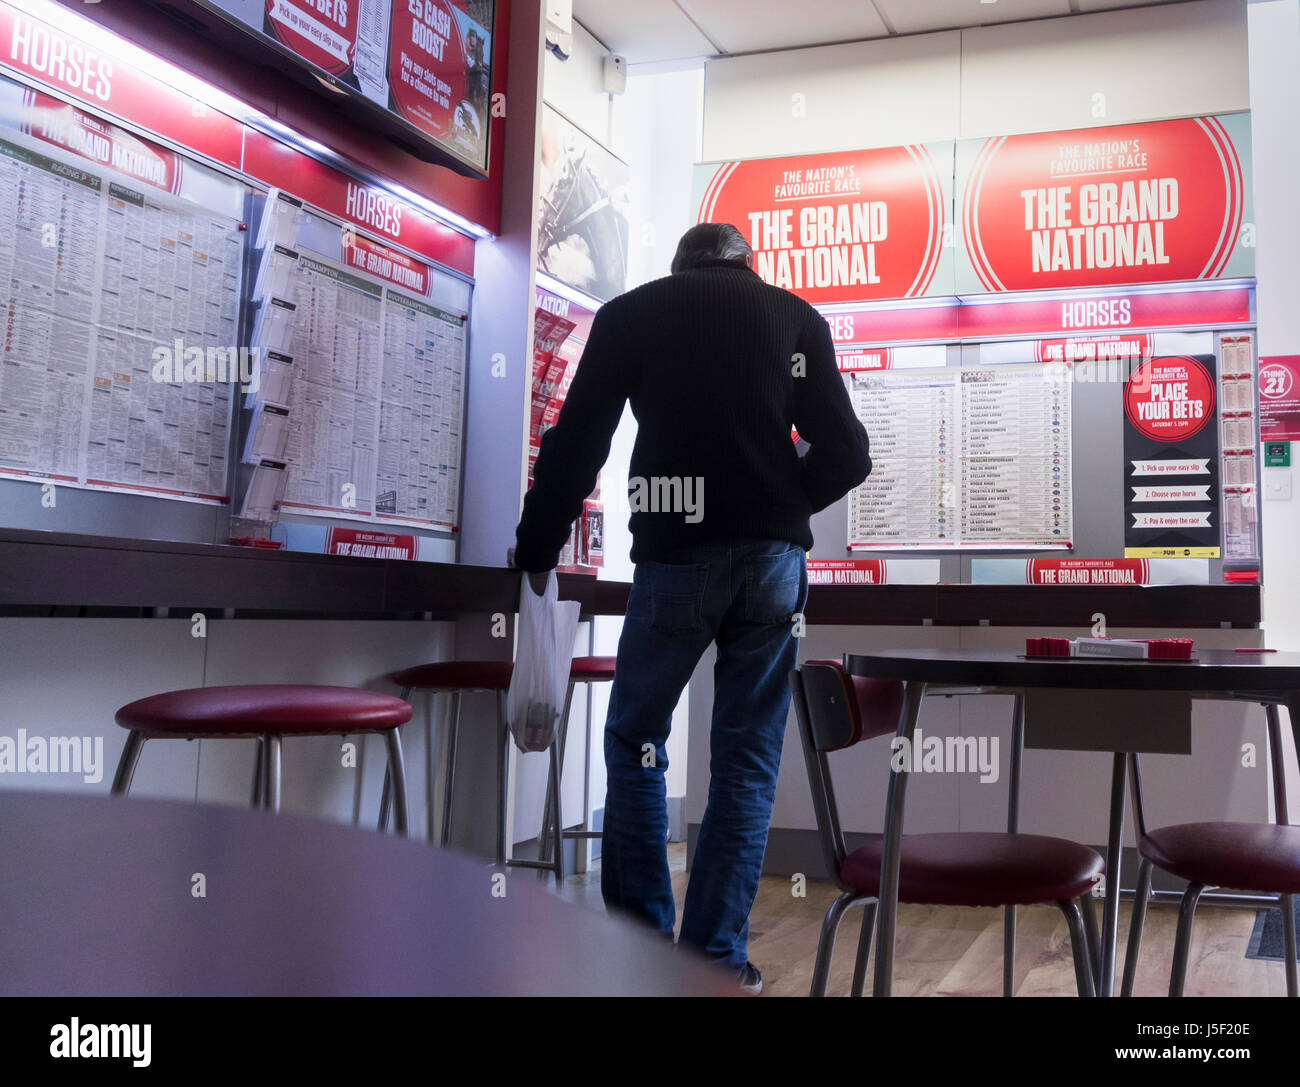 Labrokes betting shop on Grand National day. UK Stock Photo